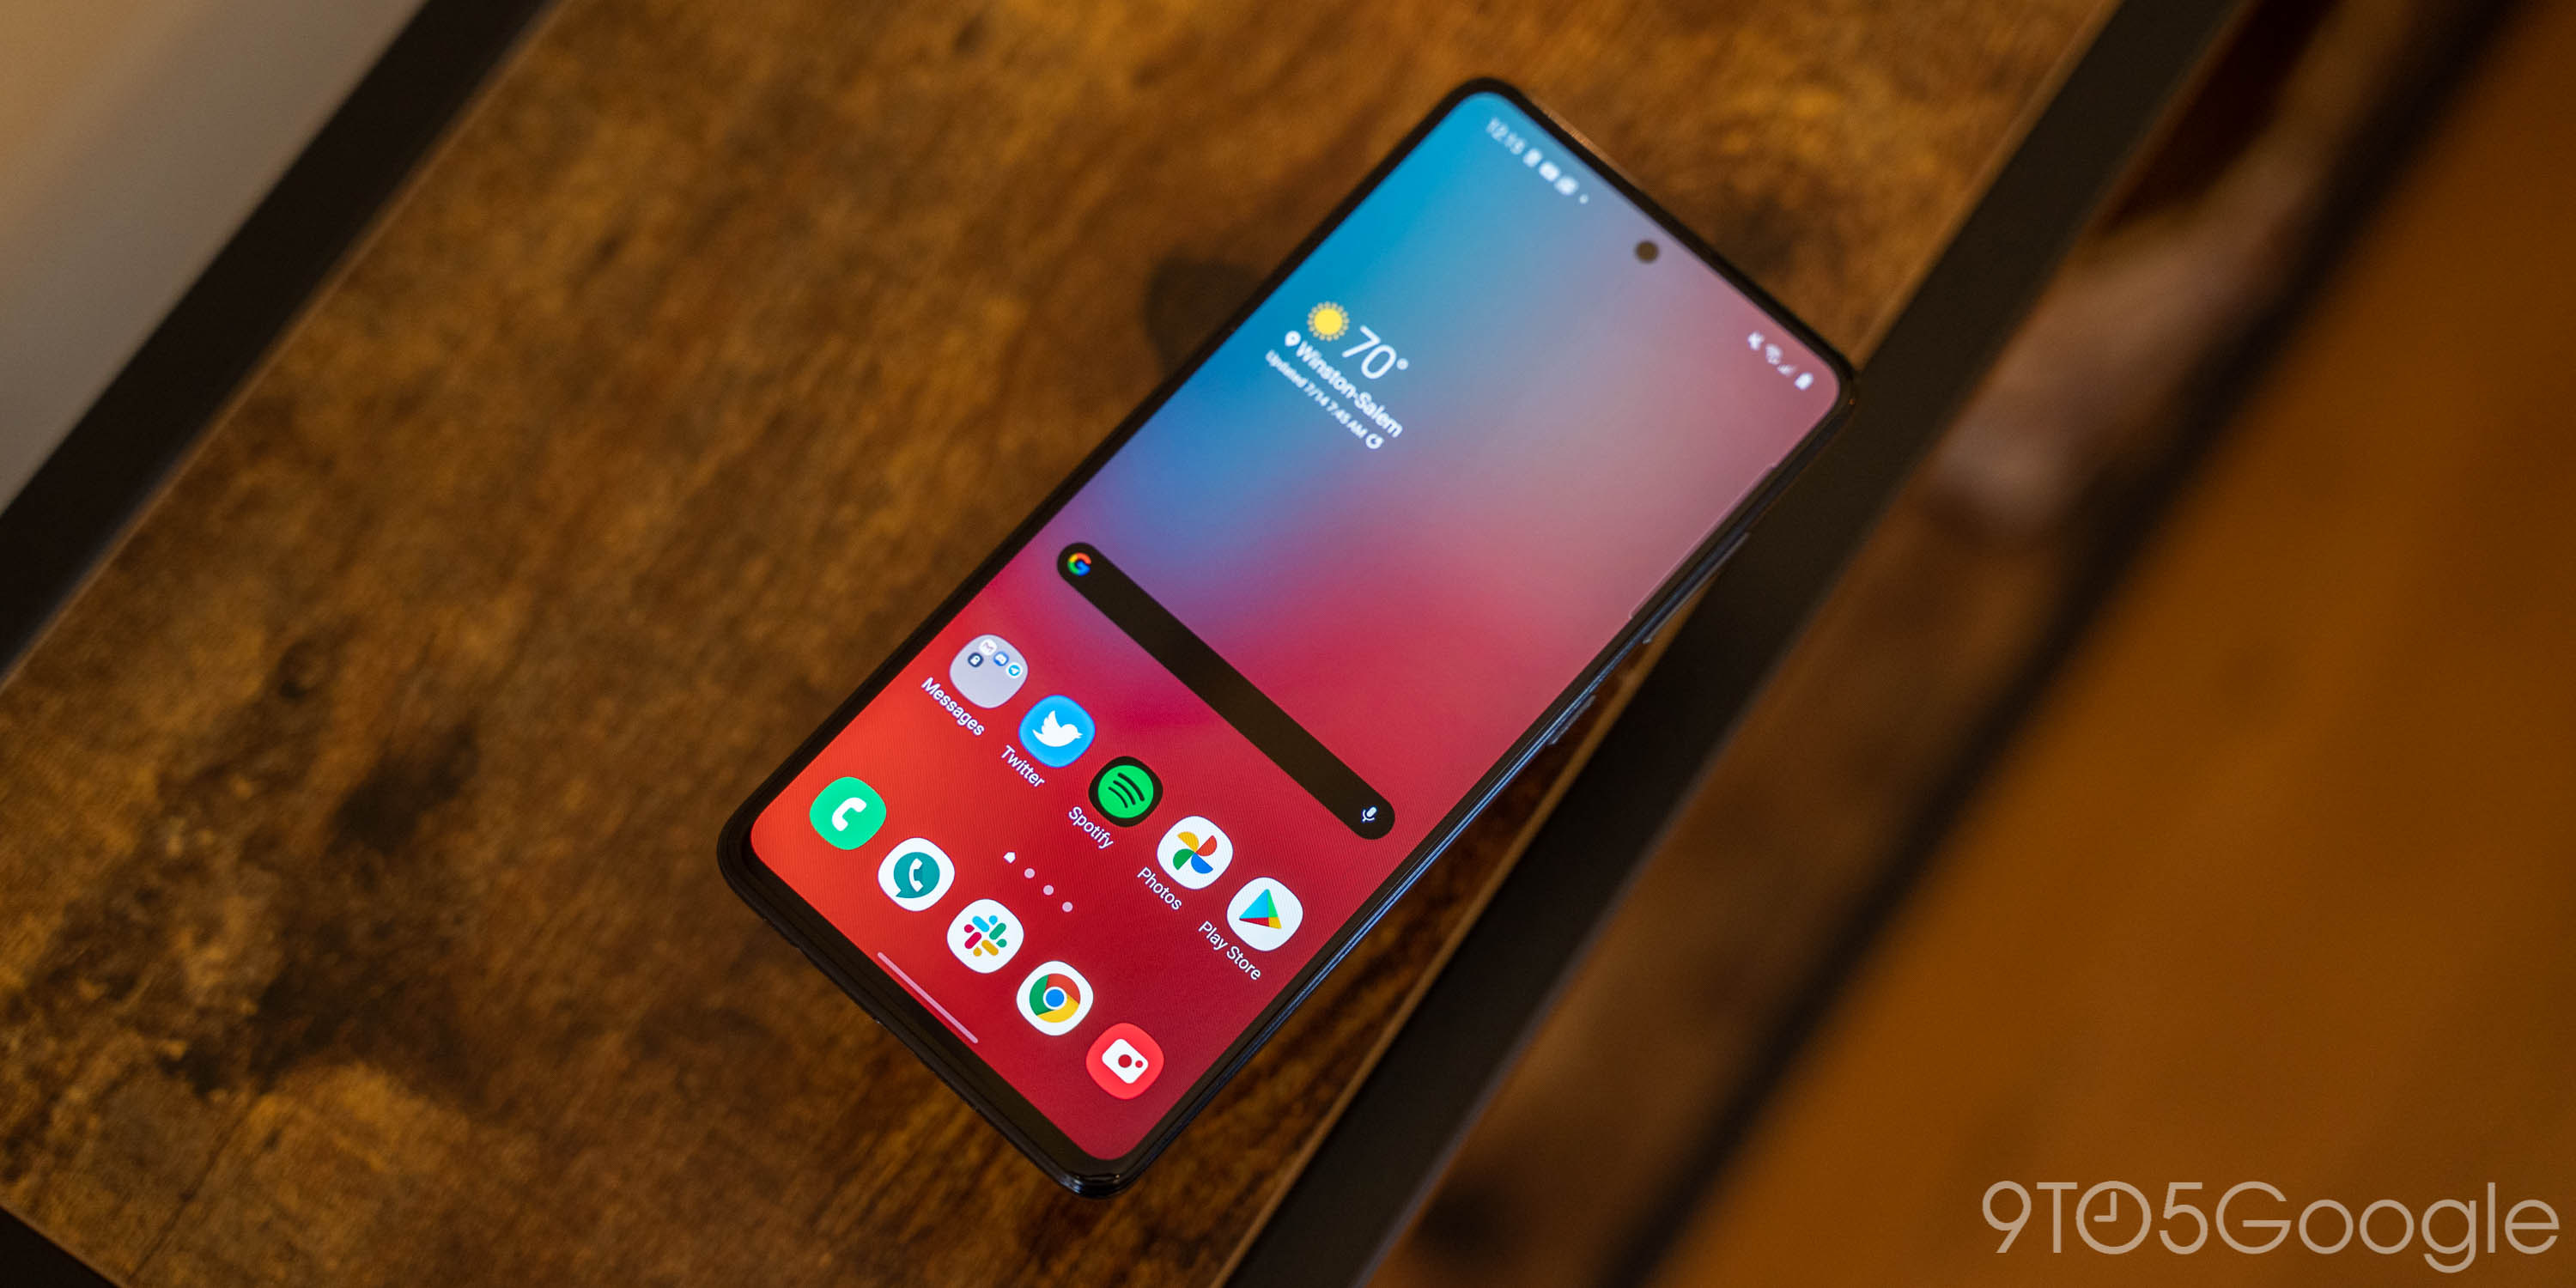 Samsung all but drops off of the top 10 best-selling smartphones in 1st half of 2020 - 9to5Google